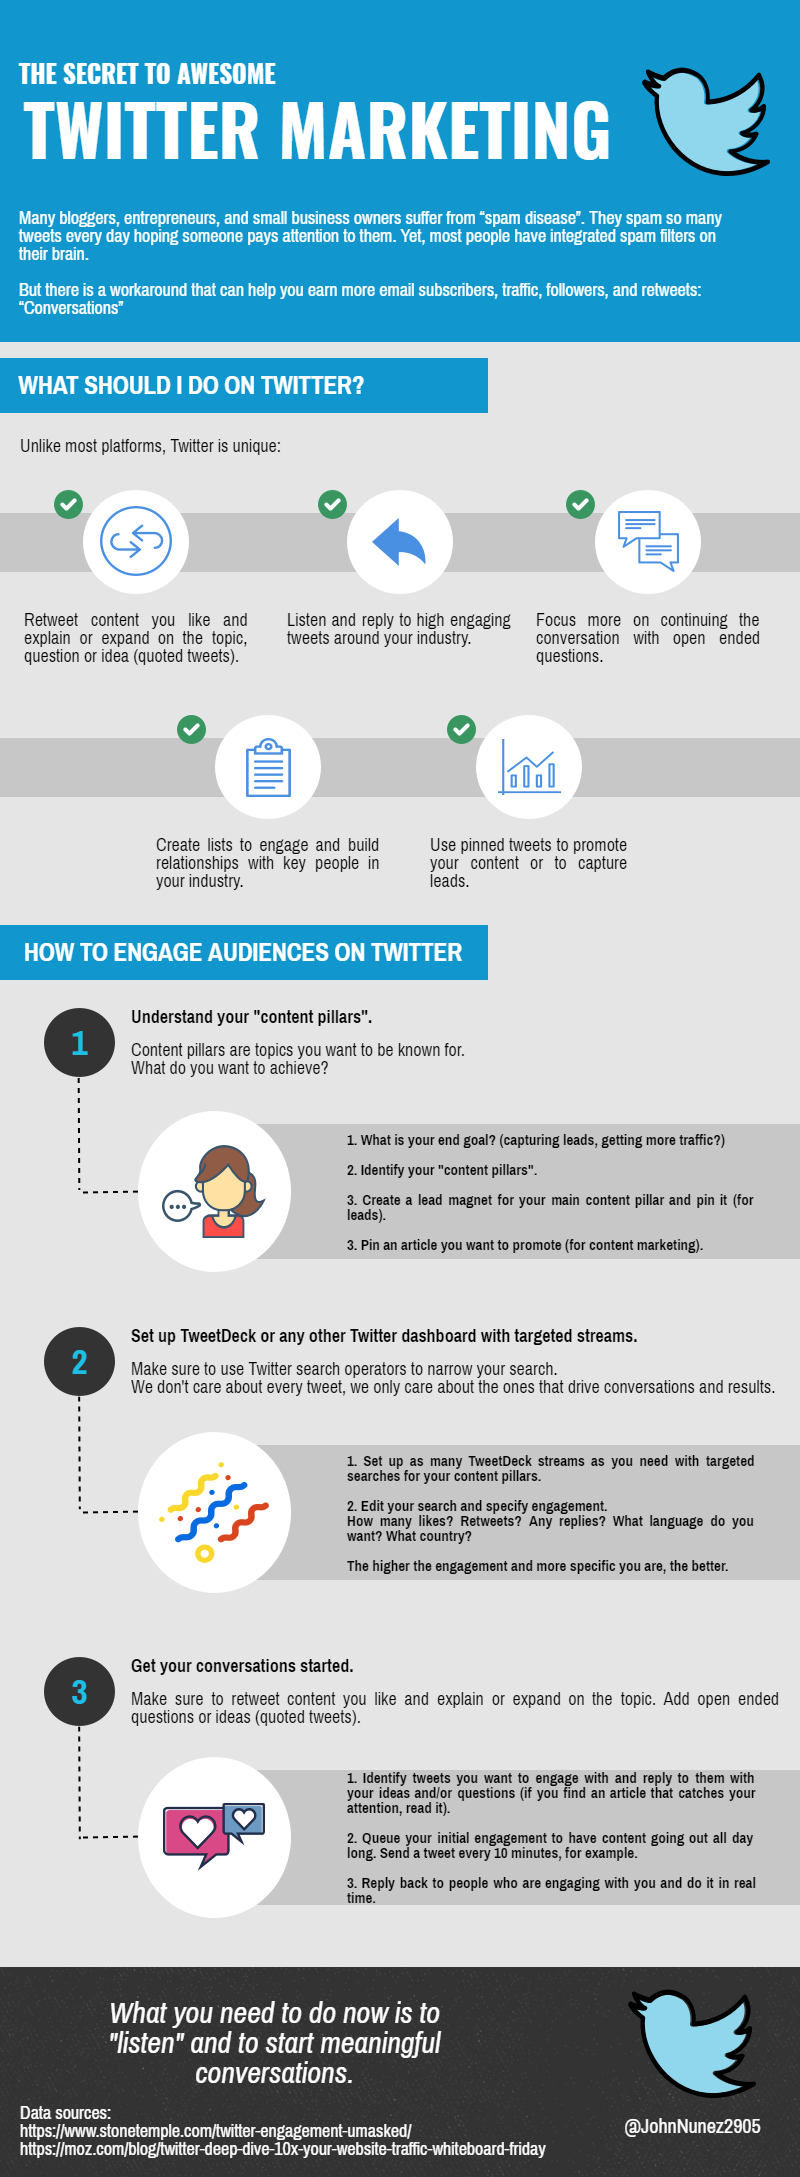 How to Use Twitter for Marketing Leads